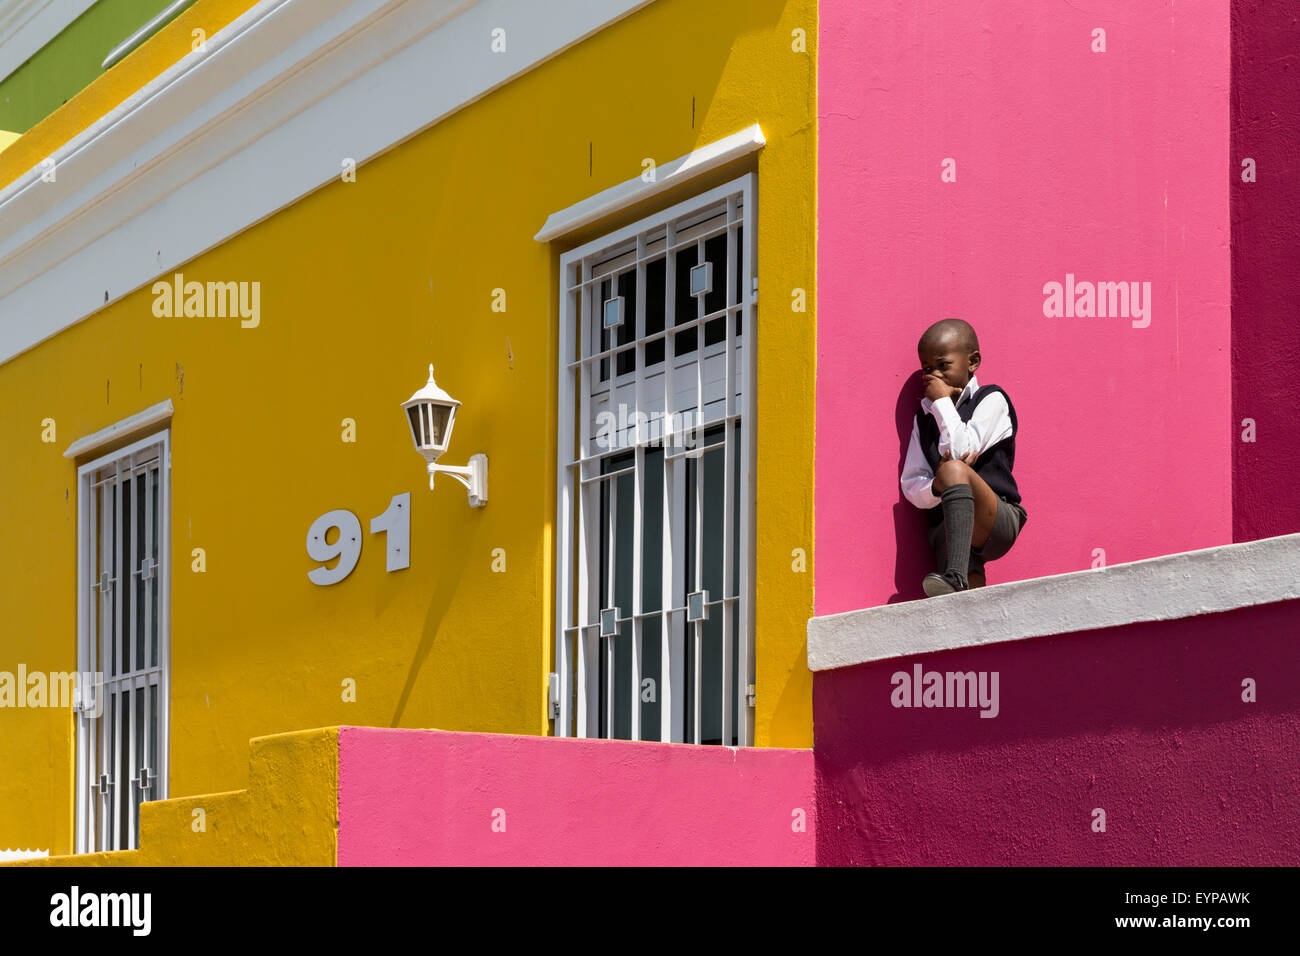 Young boy on stoop of a typical brightly-colored house on Wale St in the Bo-Kaap neighborhood of Cape Town - Stock Image